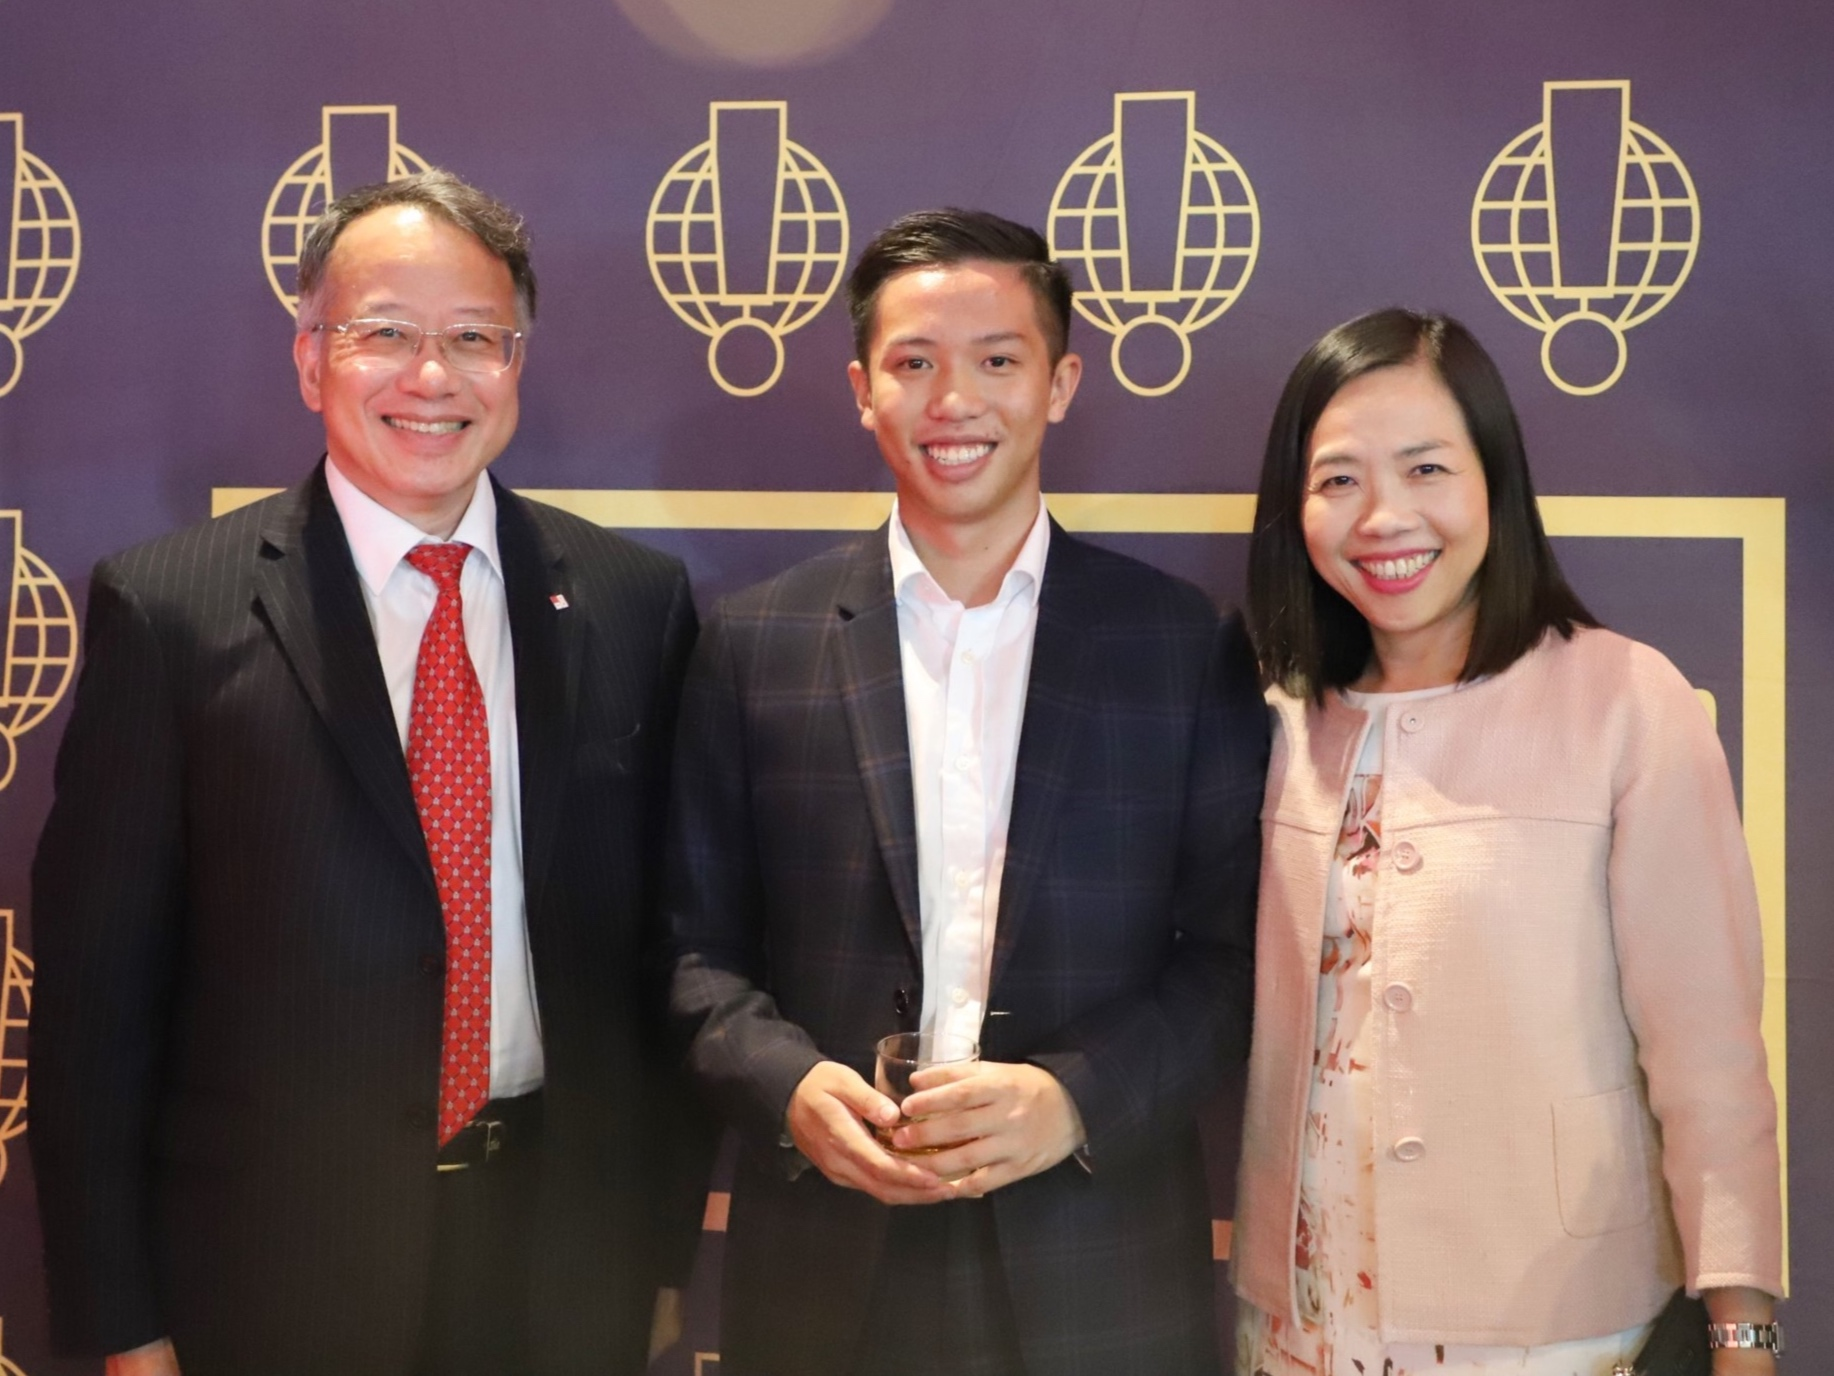 Founder and President Joseph Wan, and Director Jacqueline Lam with William Lo (Executive Director, Finance, Airport Authority Hong Kong)